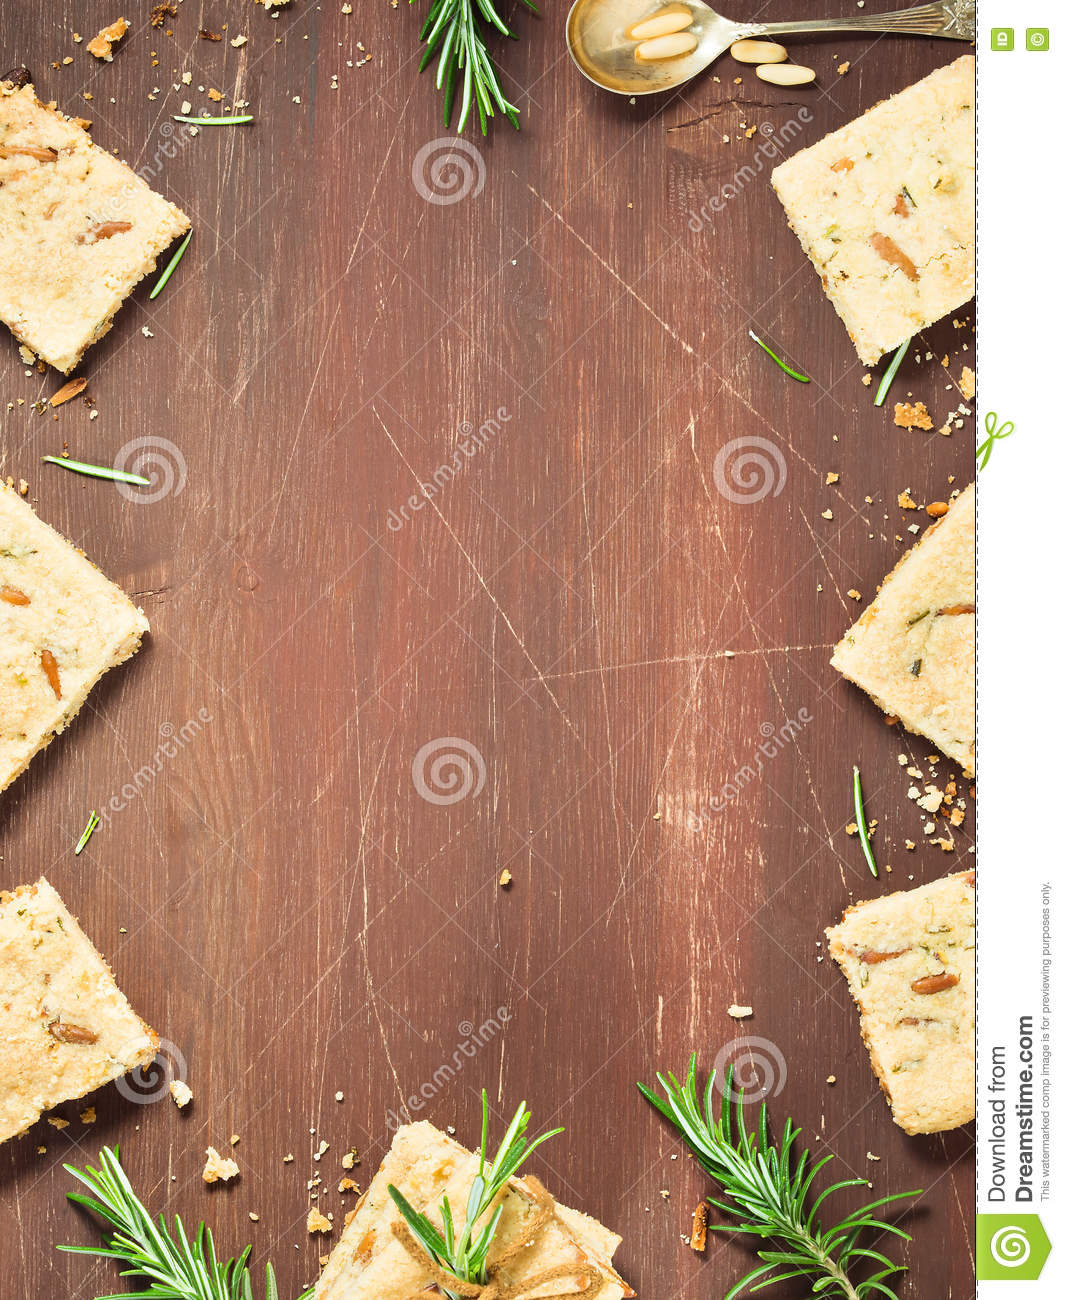 Vertical Wooden Background With Winter Cookies Stock Photo